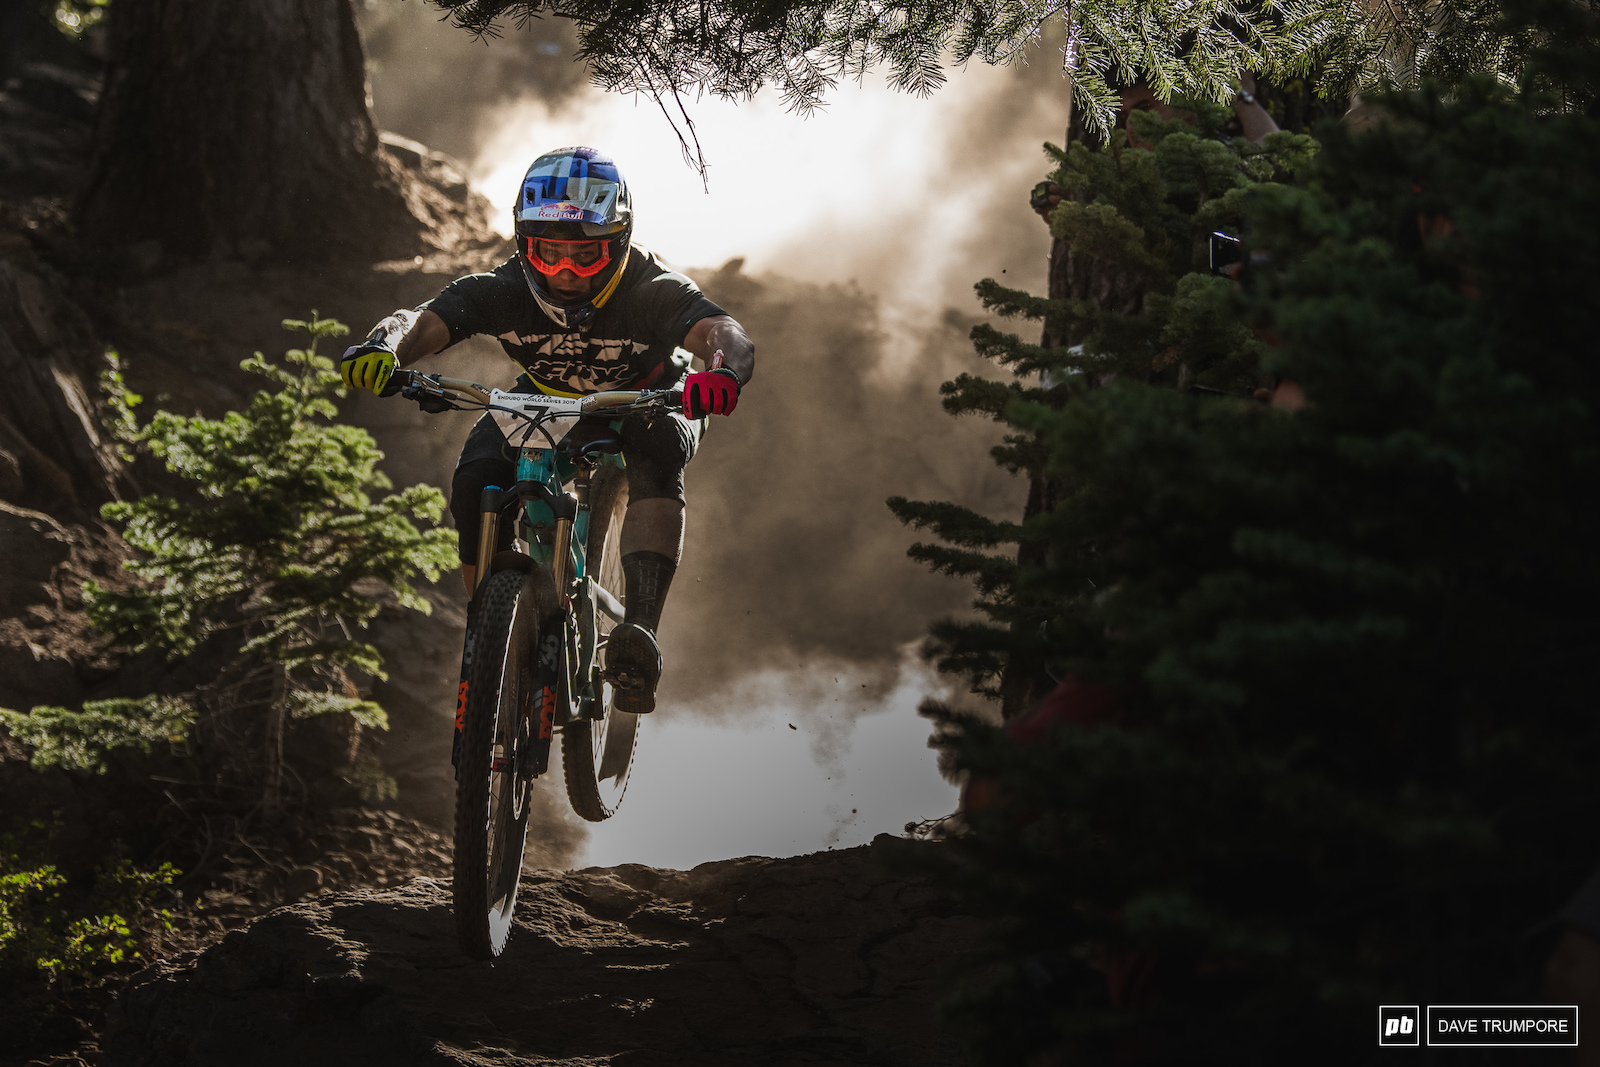 Richie Rude crushed everyone on stage 1 but Sam Hill returned the favor on stage 2.